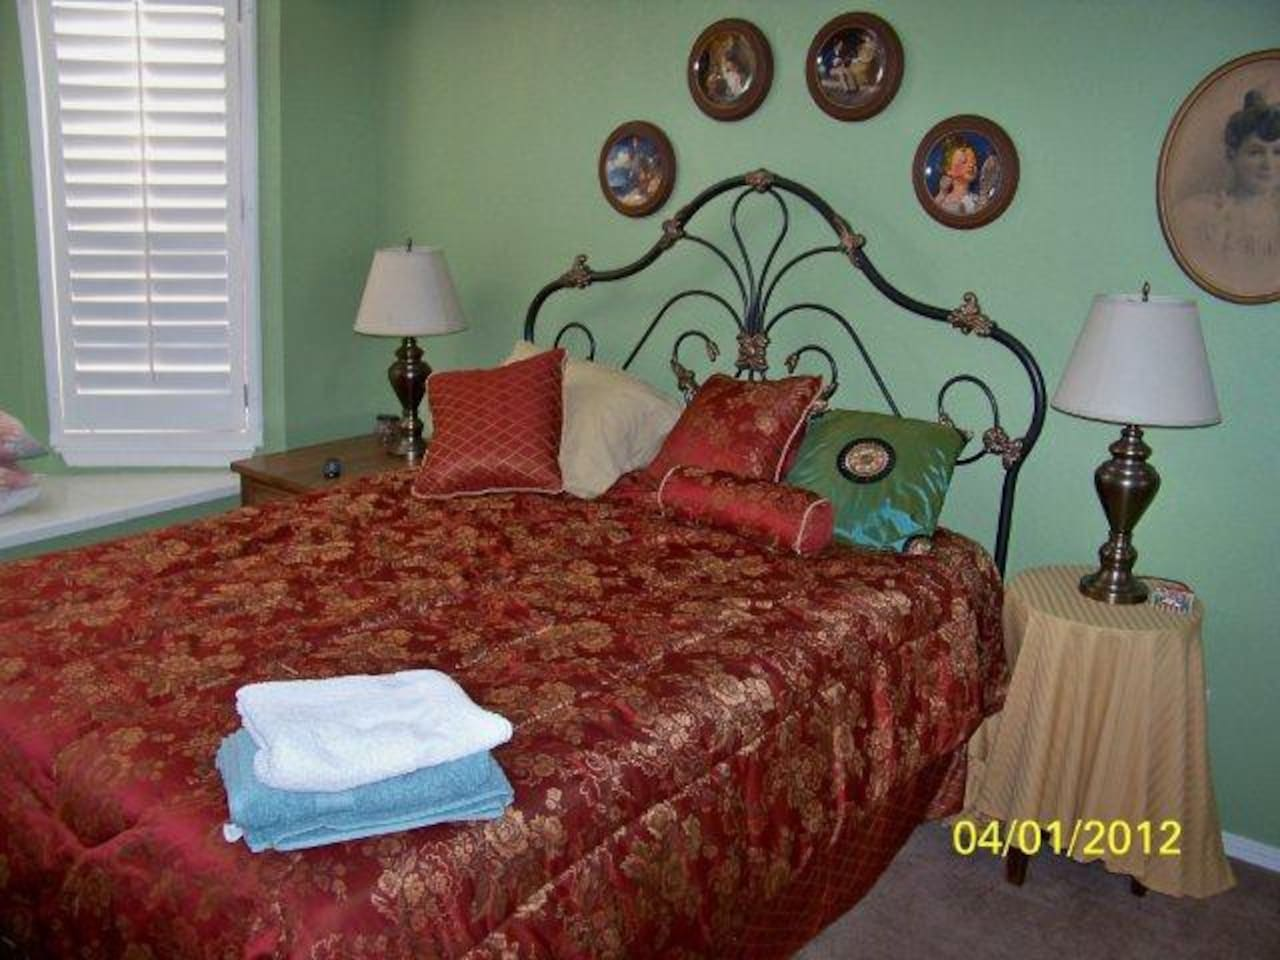 This is the bedroom that is available for rent.